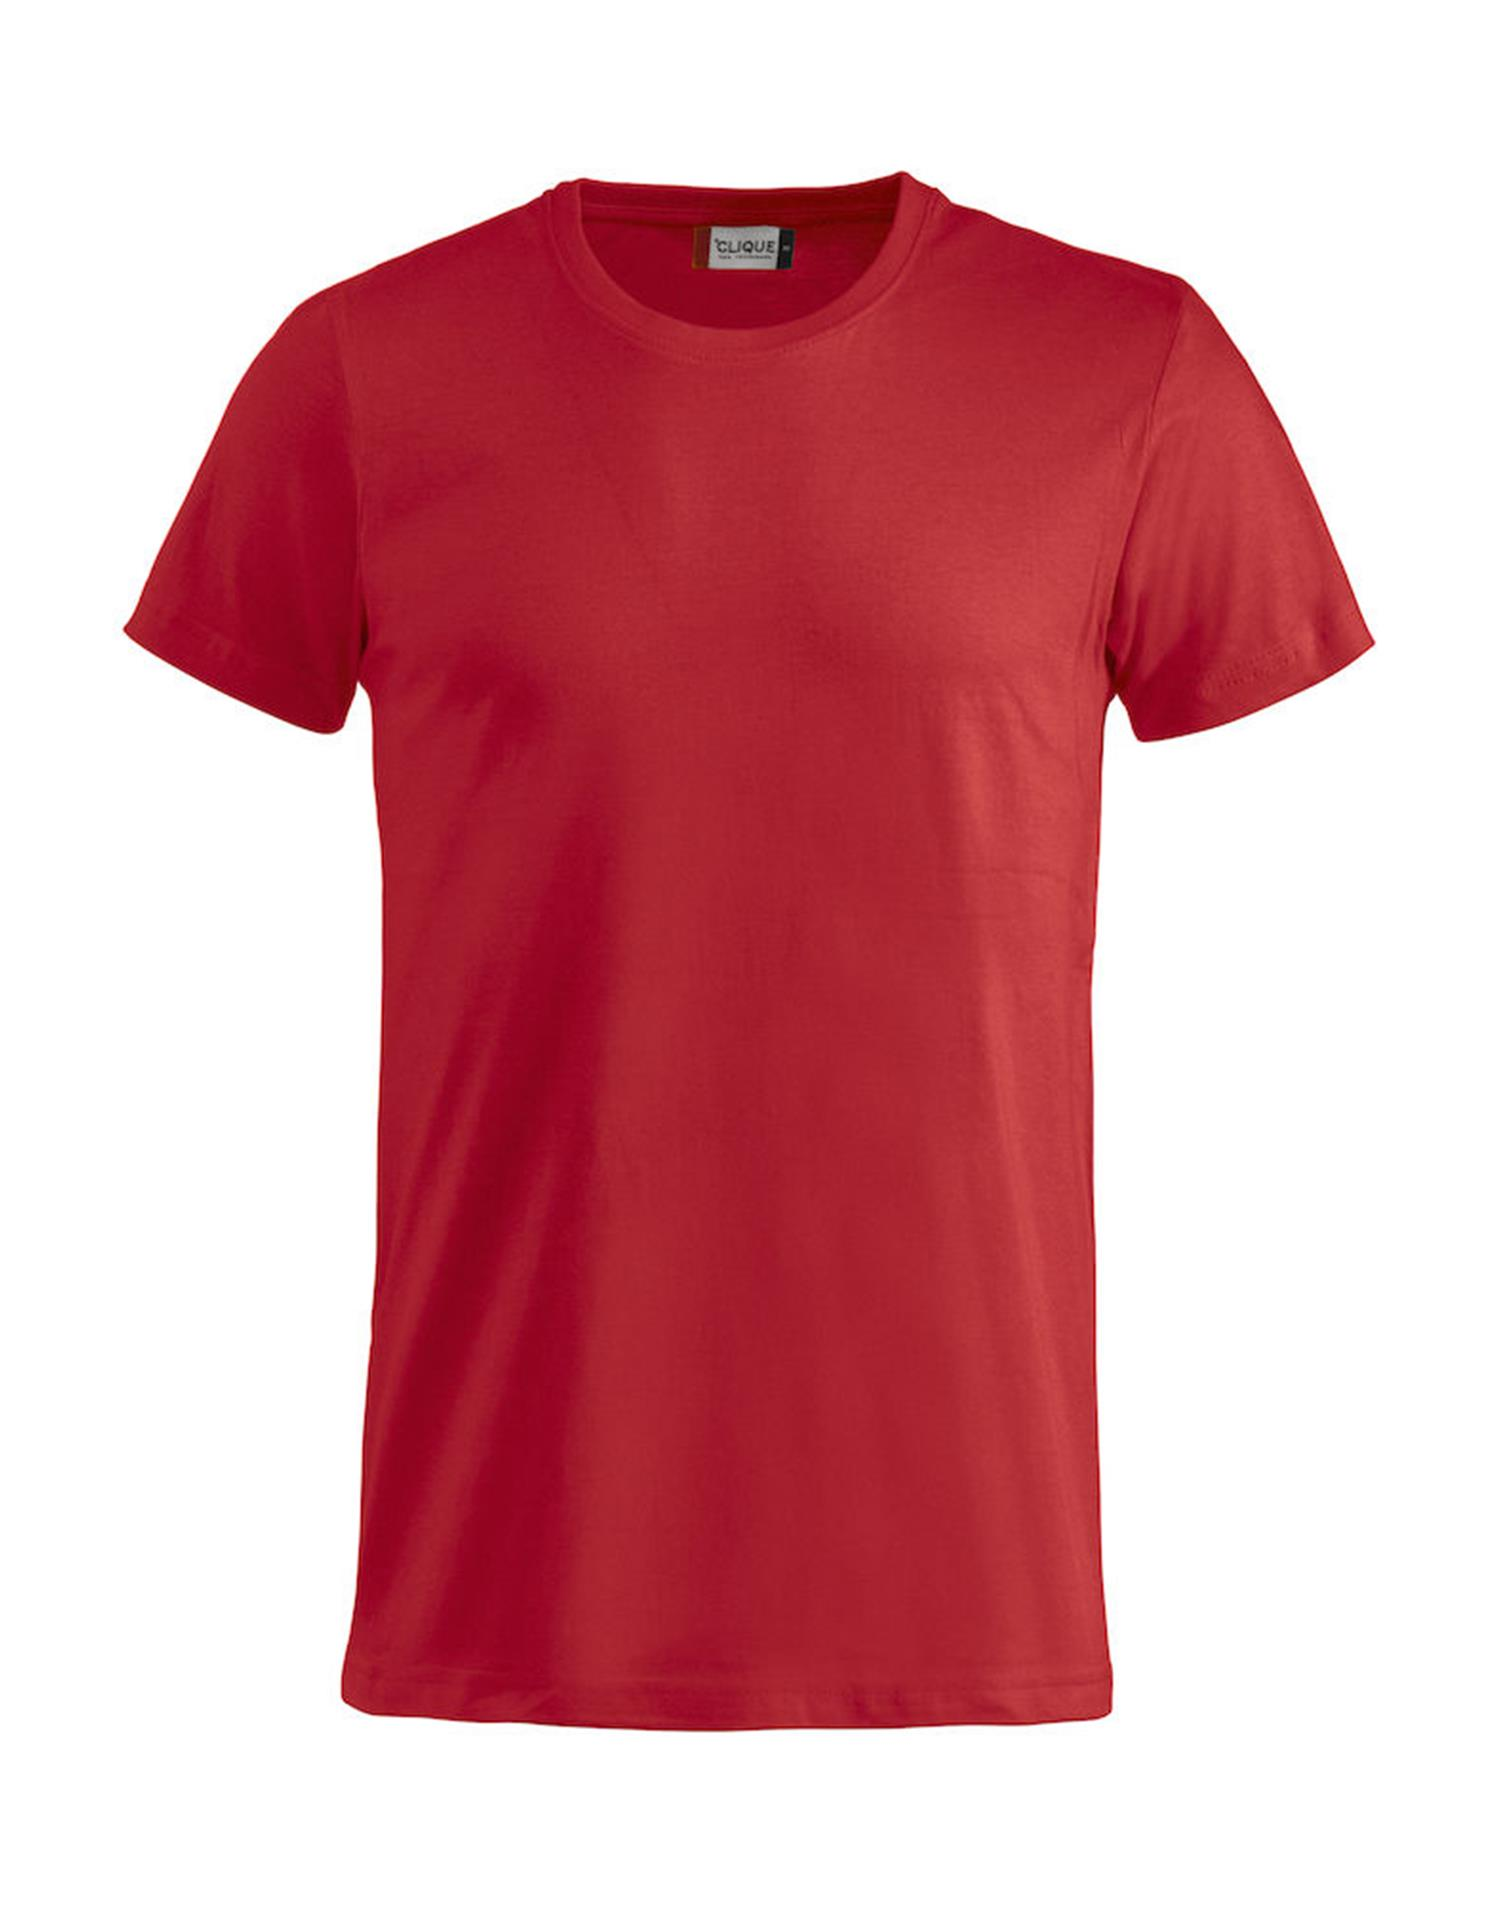 NewWave T-shirt Basic-T Clique (L - ROSSO)